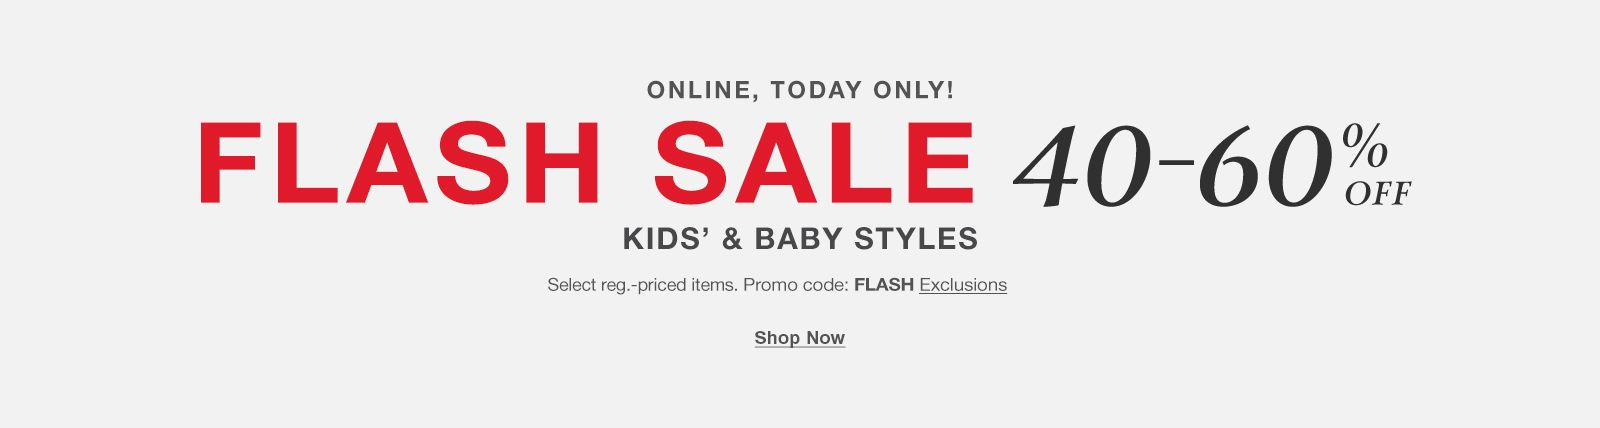 reputable site fa5b2 fc27d Macy's - Shop Fashion Clothing & Accessories - Official Site ...